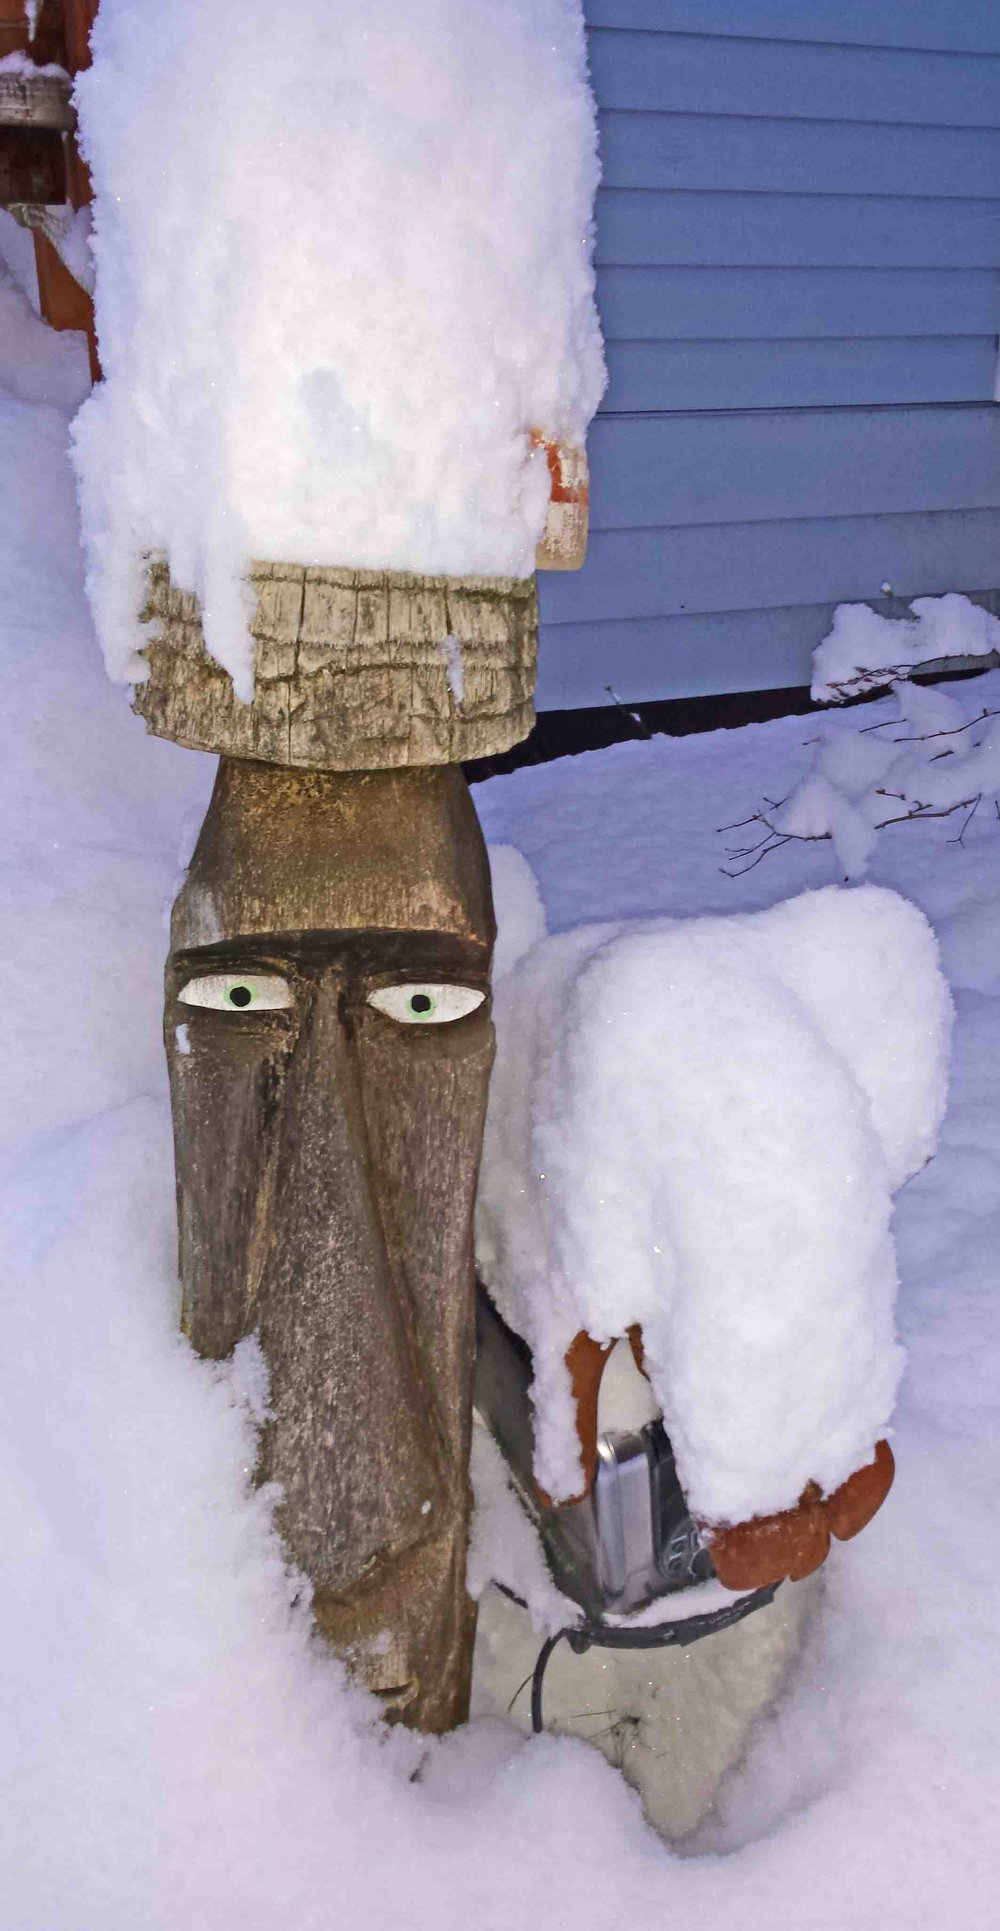 Tiki man and recycled toaster dog seemed a little glum.                       Photo: (c) Barb Ayers, DogDiary.org